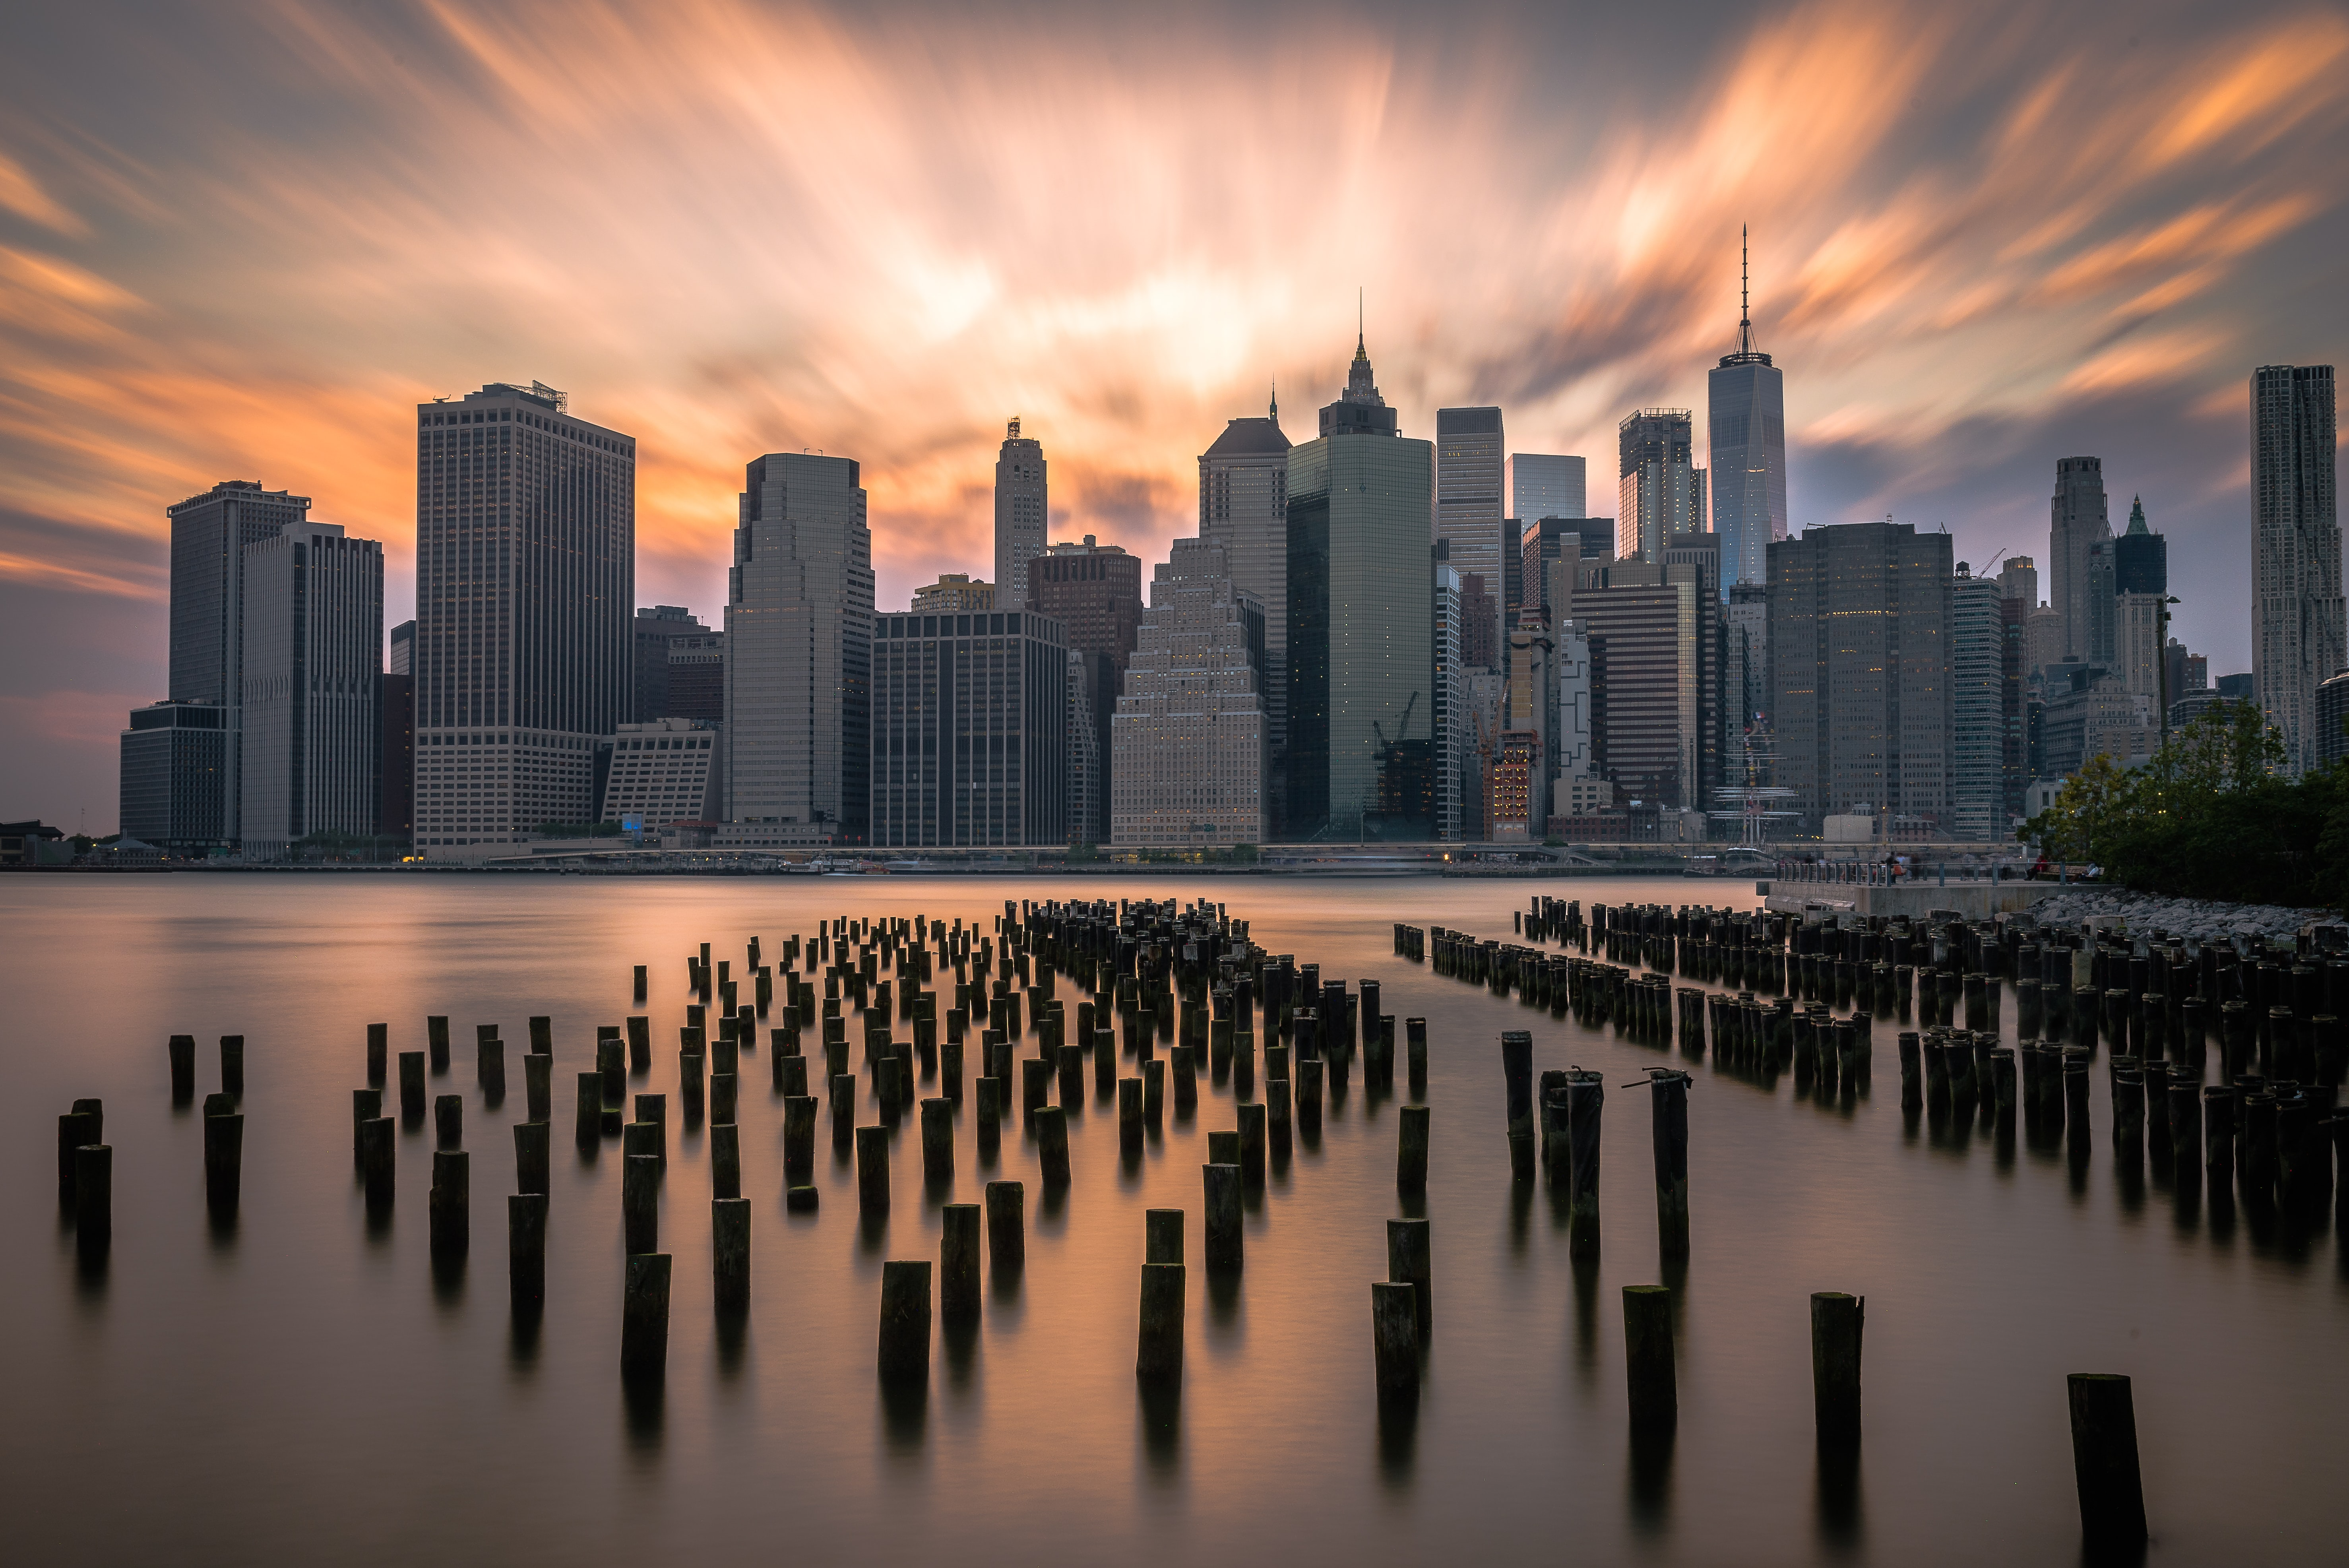 New York City from the Hudson River with the skyline and Freedom Tower in the background during sunset